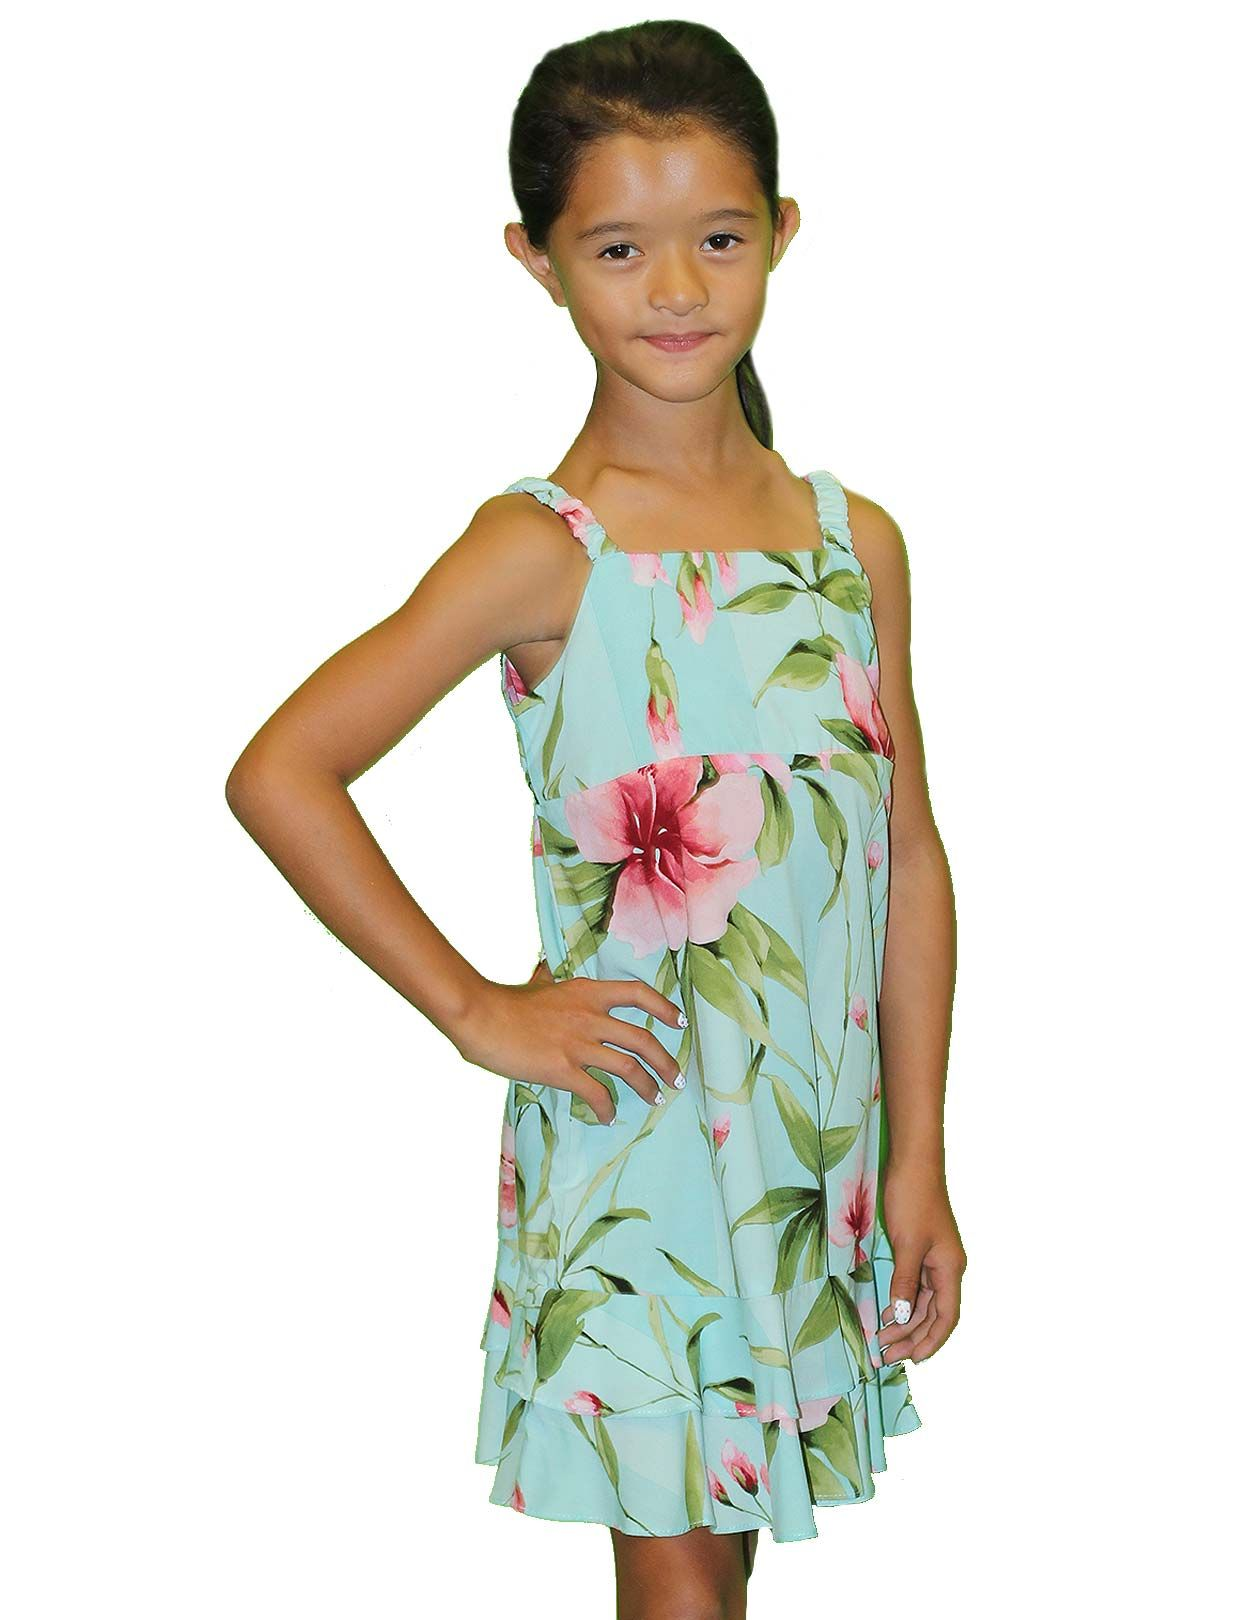 a363d0ca0a6 Check out the deal on Floral Hibiscus Girl s Hawaiian Dresses at Shaka Time  Hawaii Clothing Store FREE SHIPPING  hawaiiandresses  dresses  girlswear ...